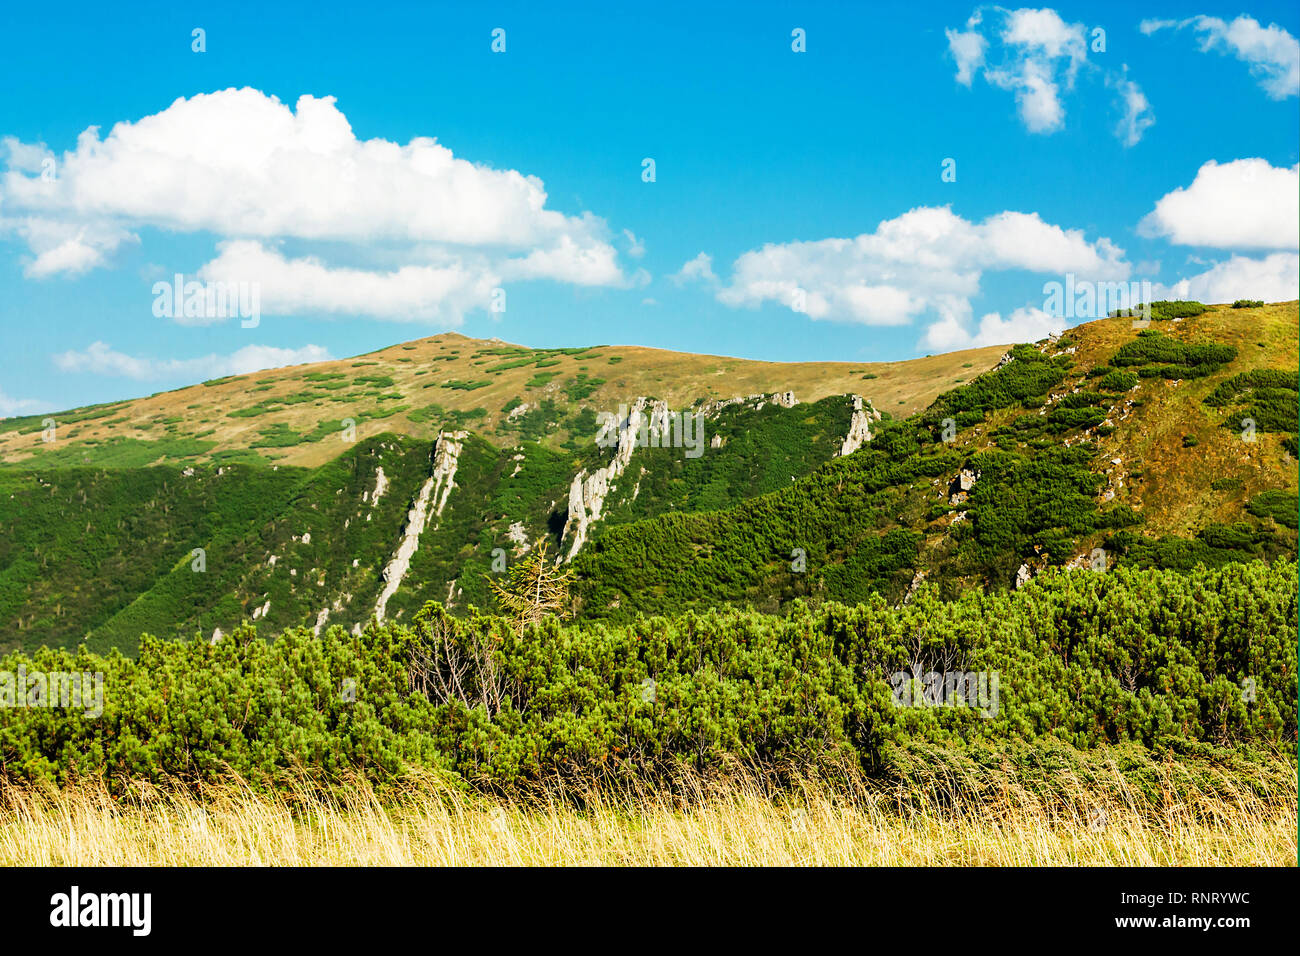 Panoramic view of the rocky mountains of the Carpathians, Ukraine. Beautiful view of the Montenegrin ridge. Stock Photo